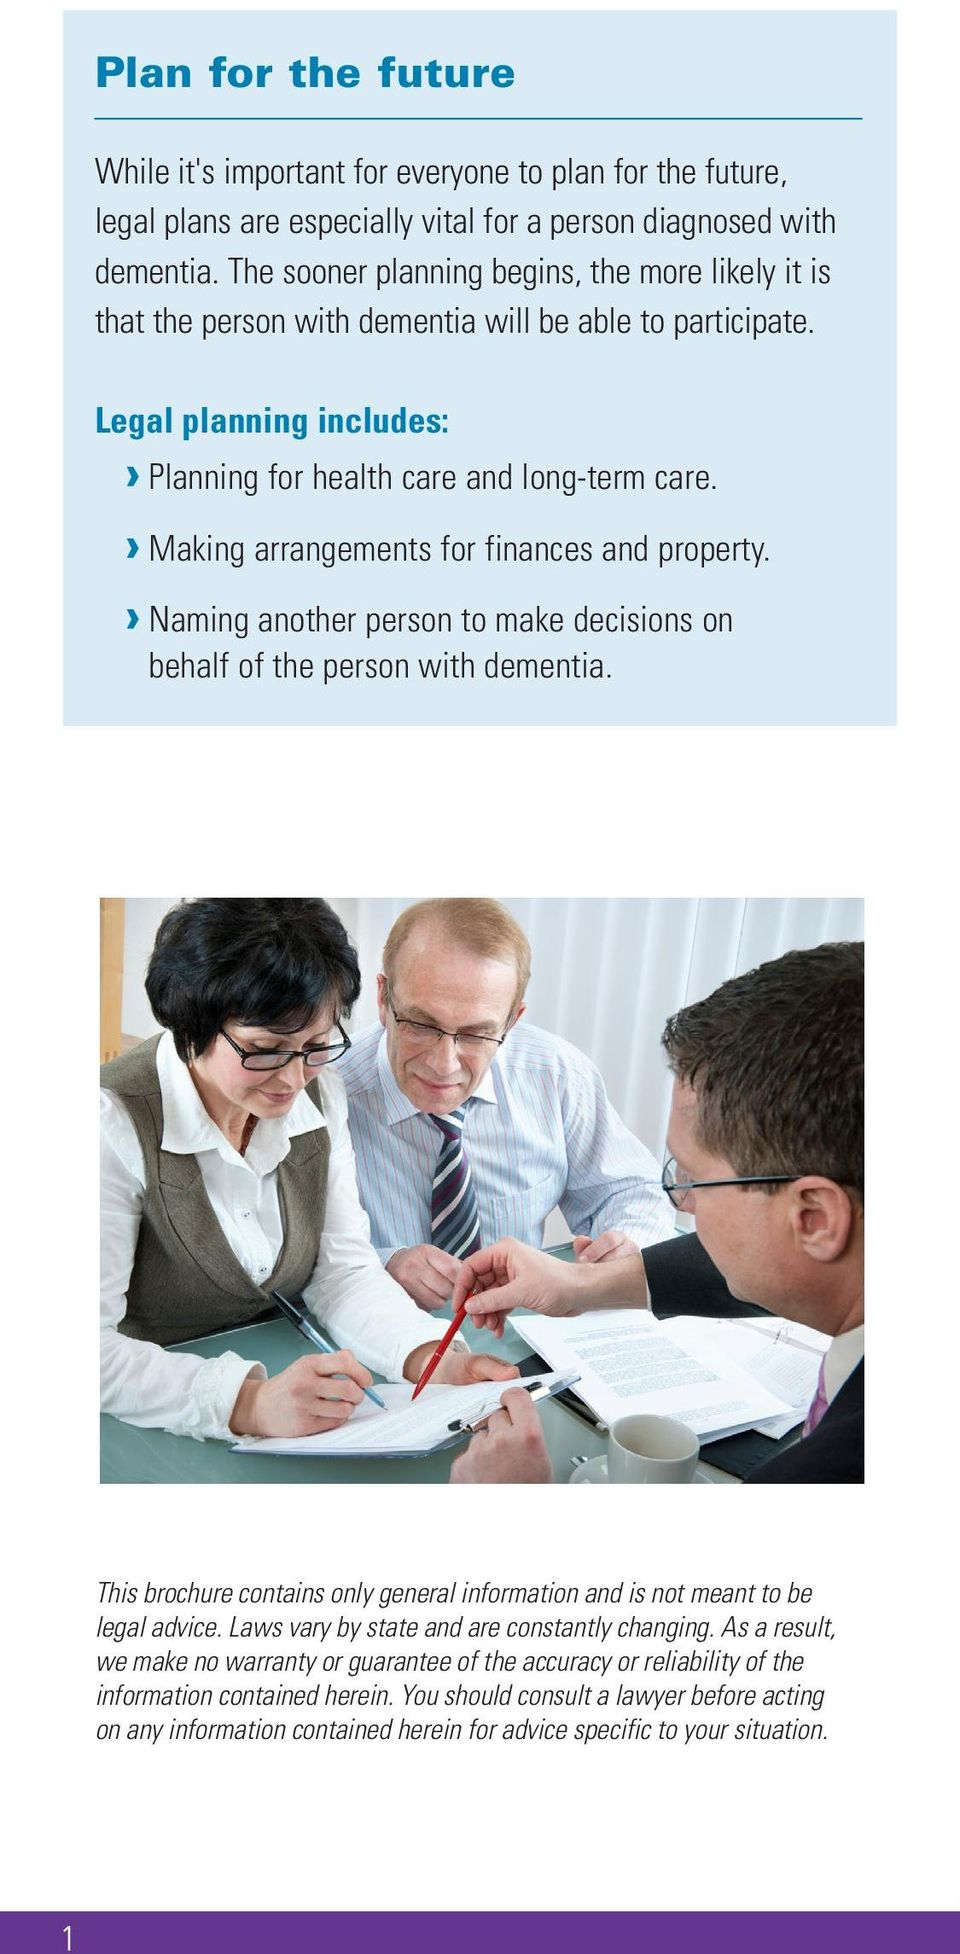 Making arrangements for finances and property. Naming another person to make decisions on behalf of the person with dementia.